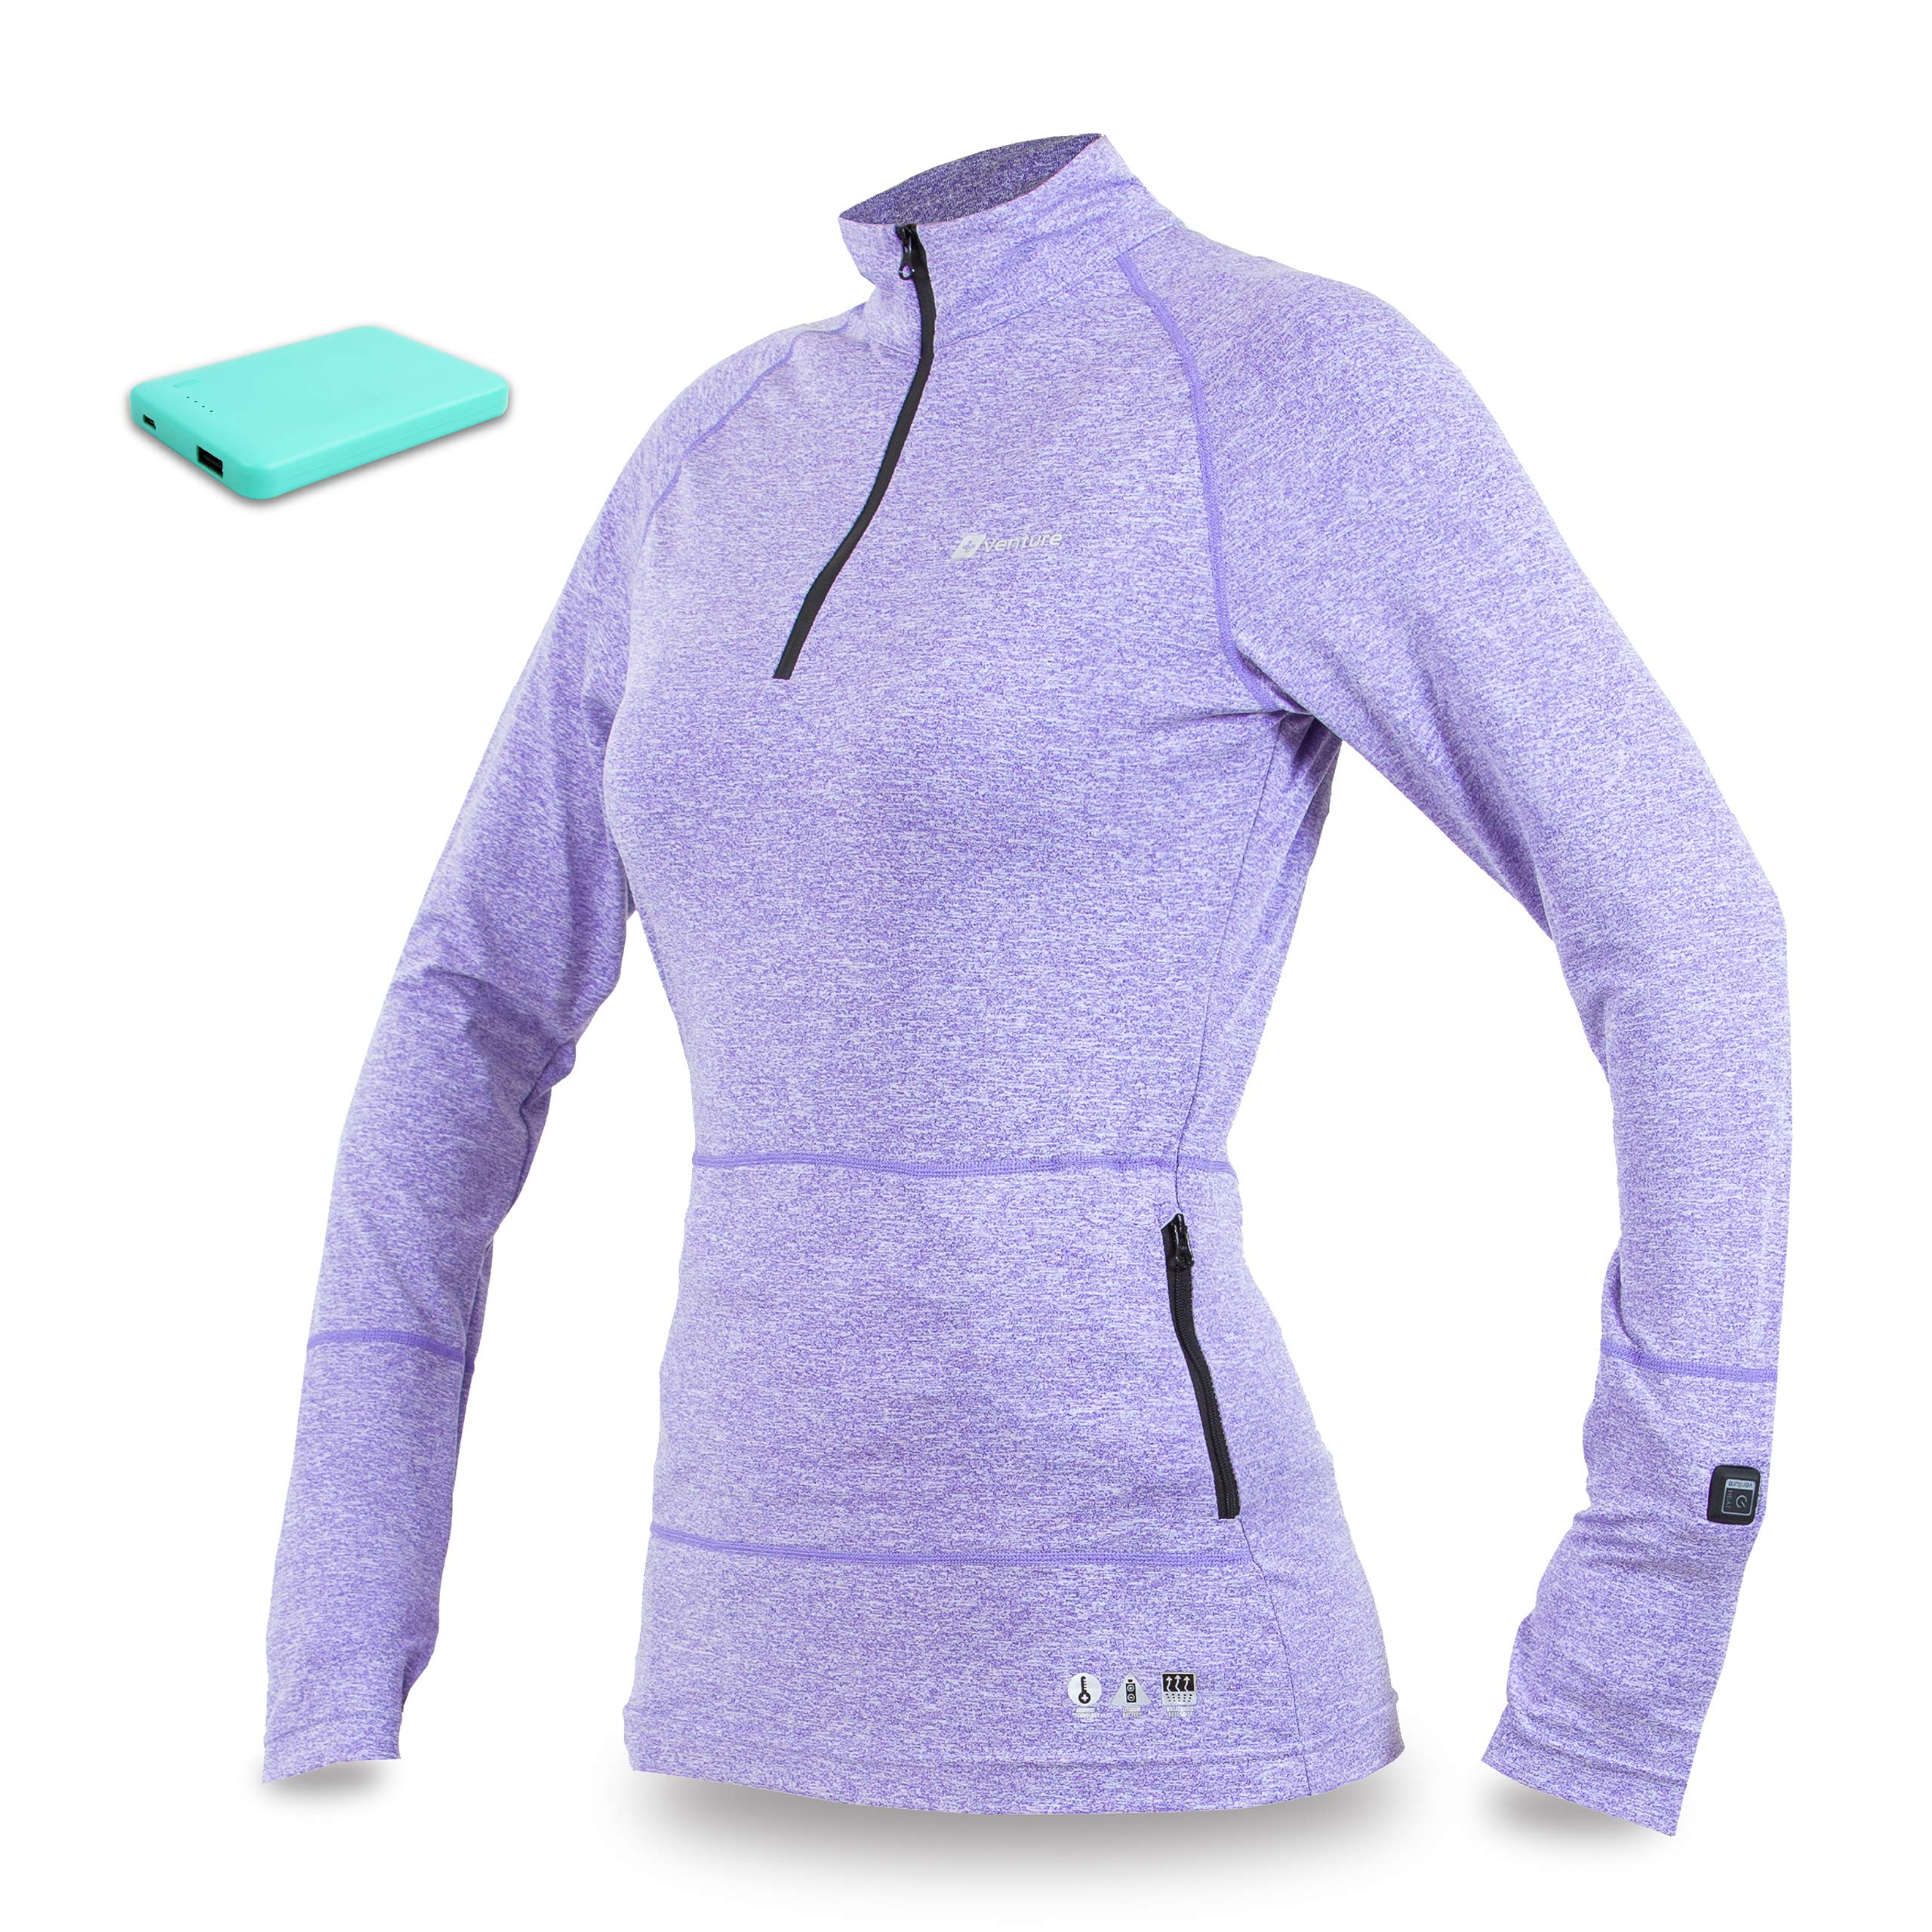 Venture Heat Women's Heated Shirt Thermal Underwear with Battery Pack - Long John, 1/4 Zip Electric Base Layer, Nomad (XL, Purple) by Venture Heat